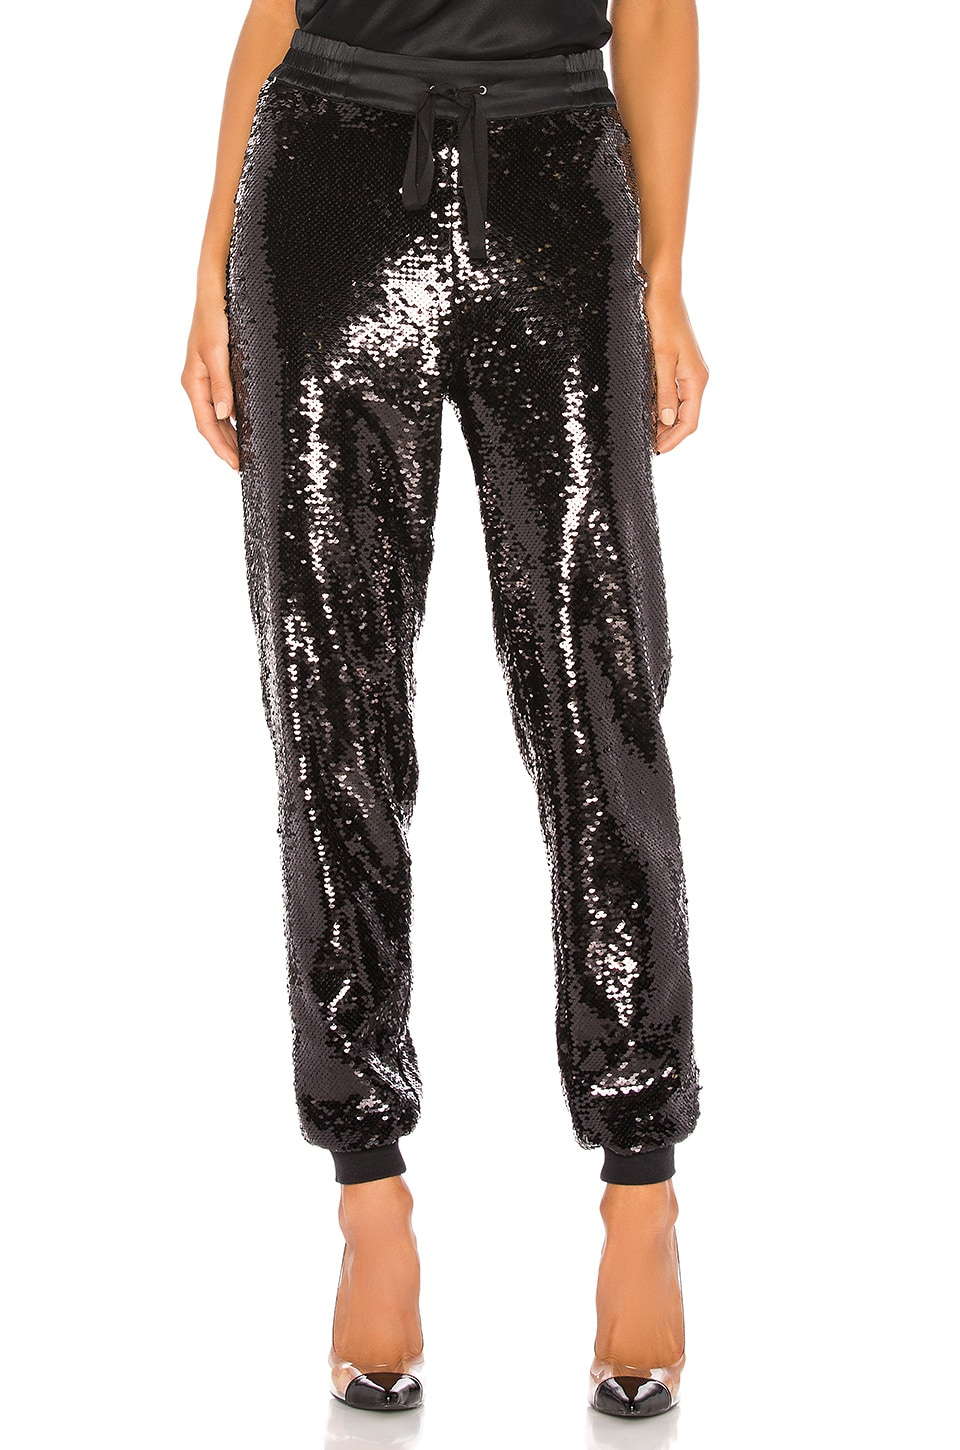 CAMI NYC The Jagger Jogger in Black